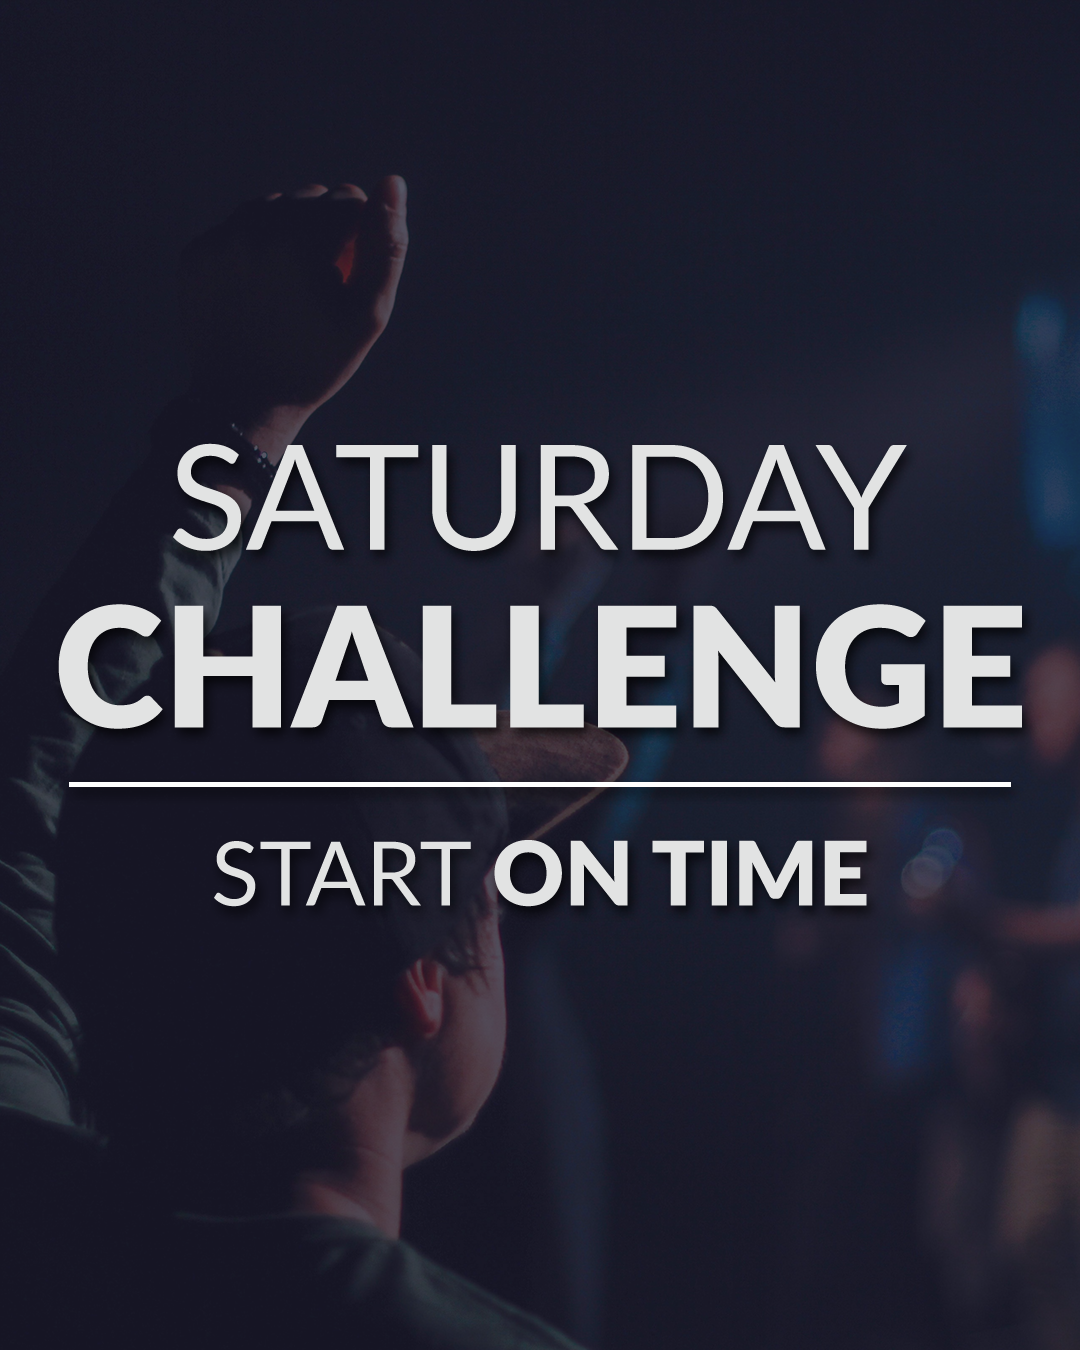 Saturday Challenge - Start On Time